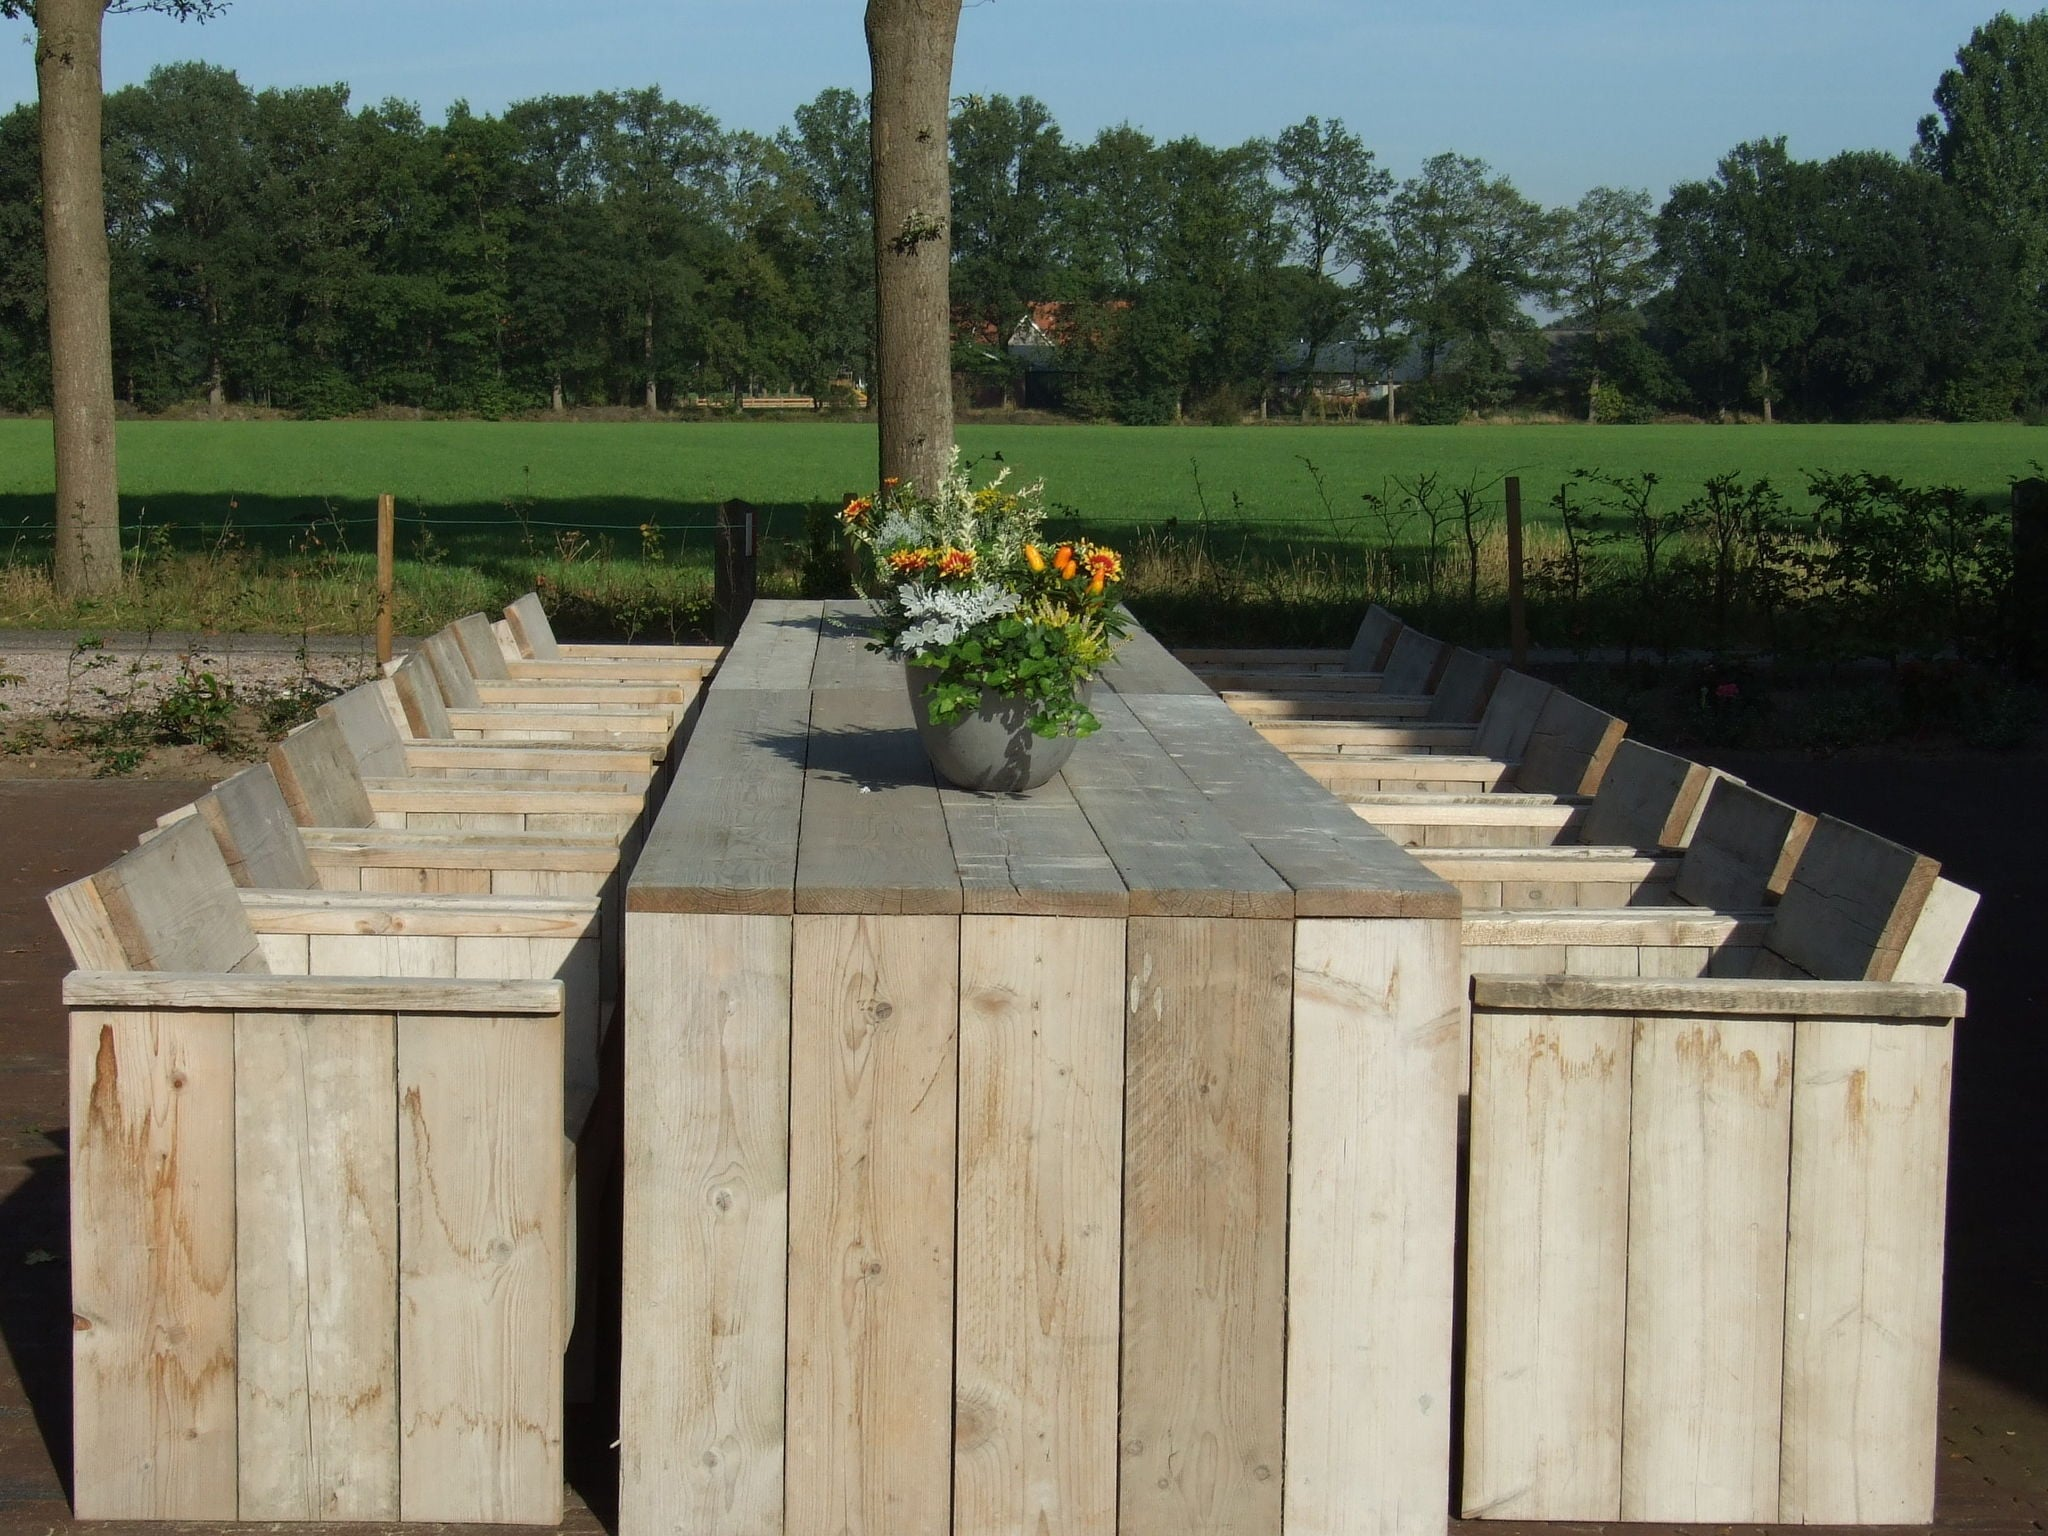 Holland | Overijssel | Holiday home Groots Twente | all year | GardenSummer